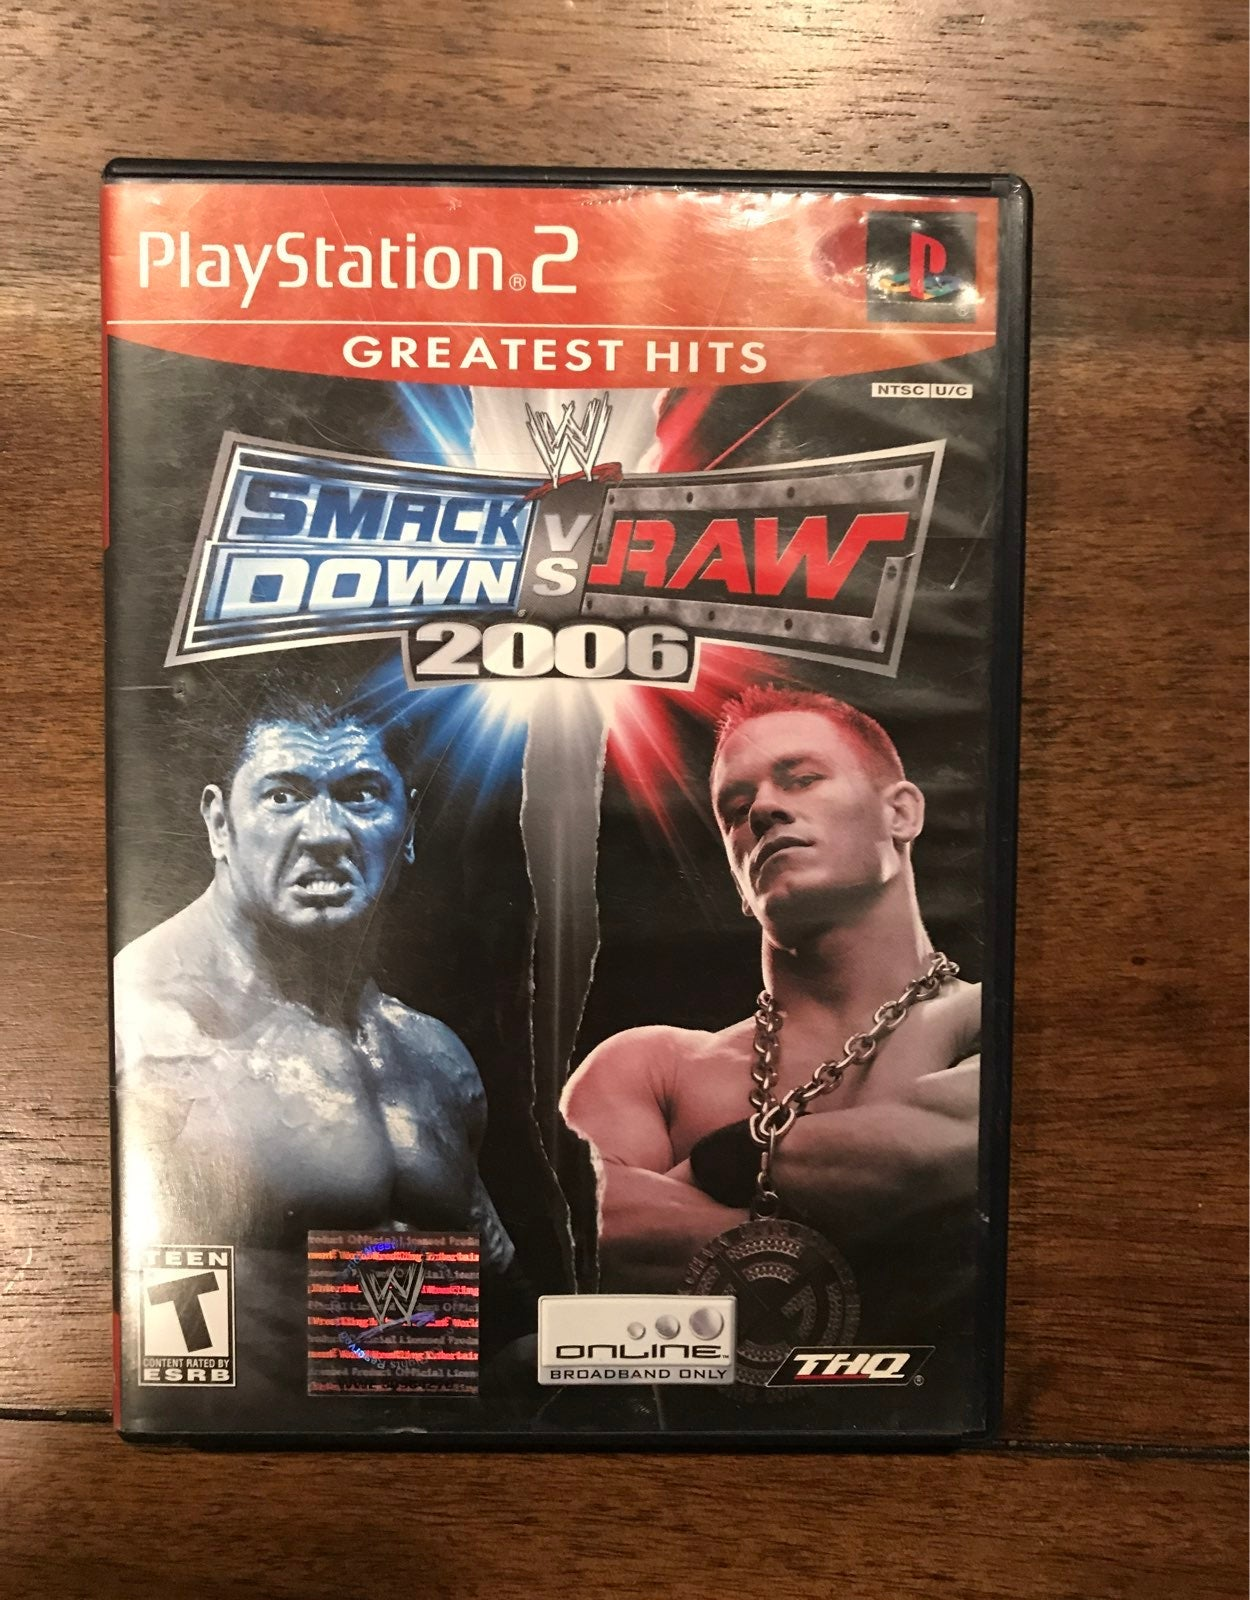 WWE SmackDown Raw 2006 ps2